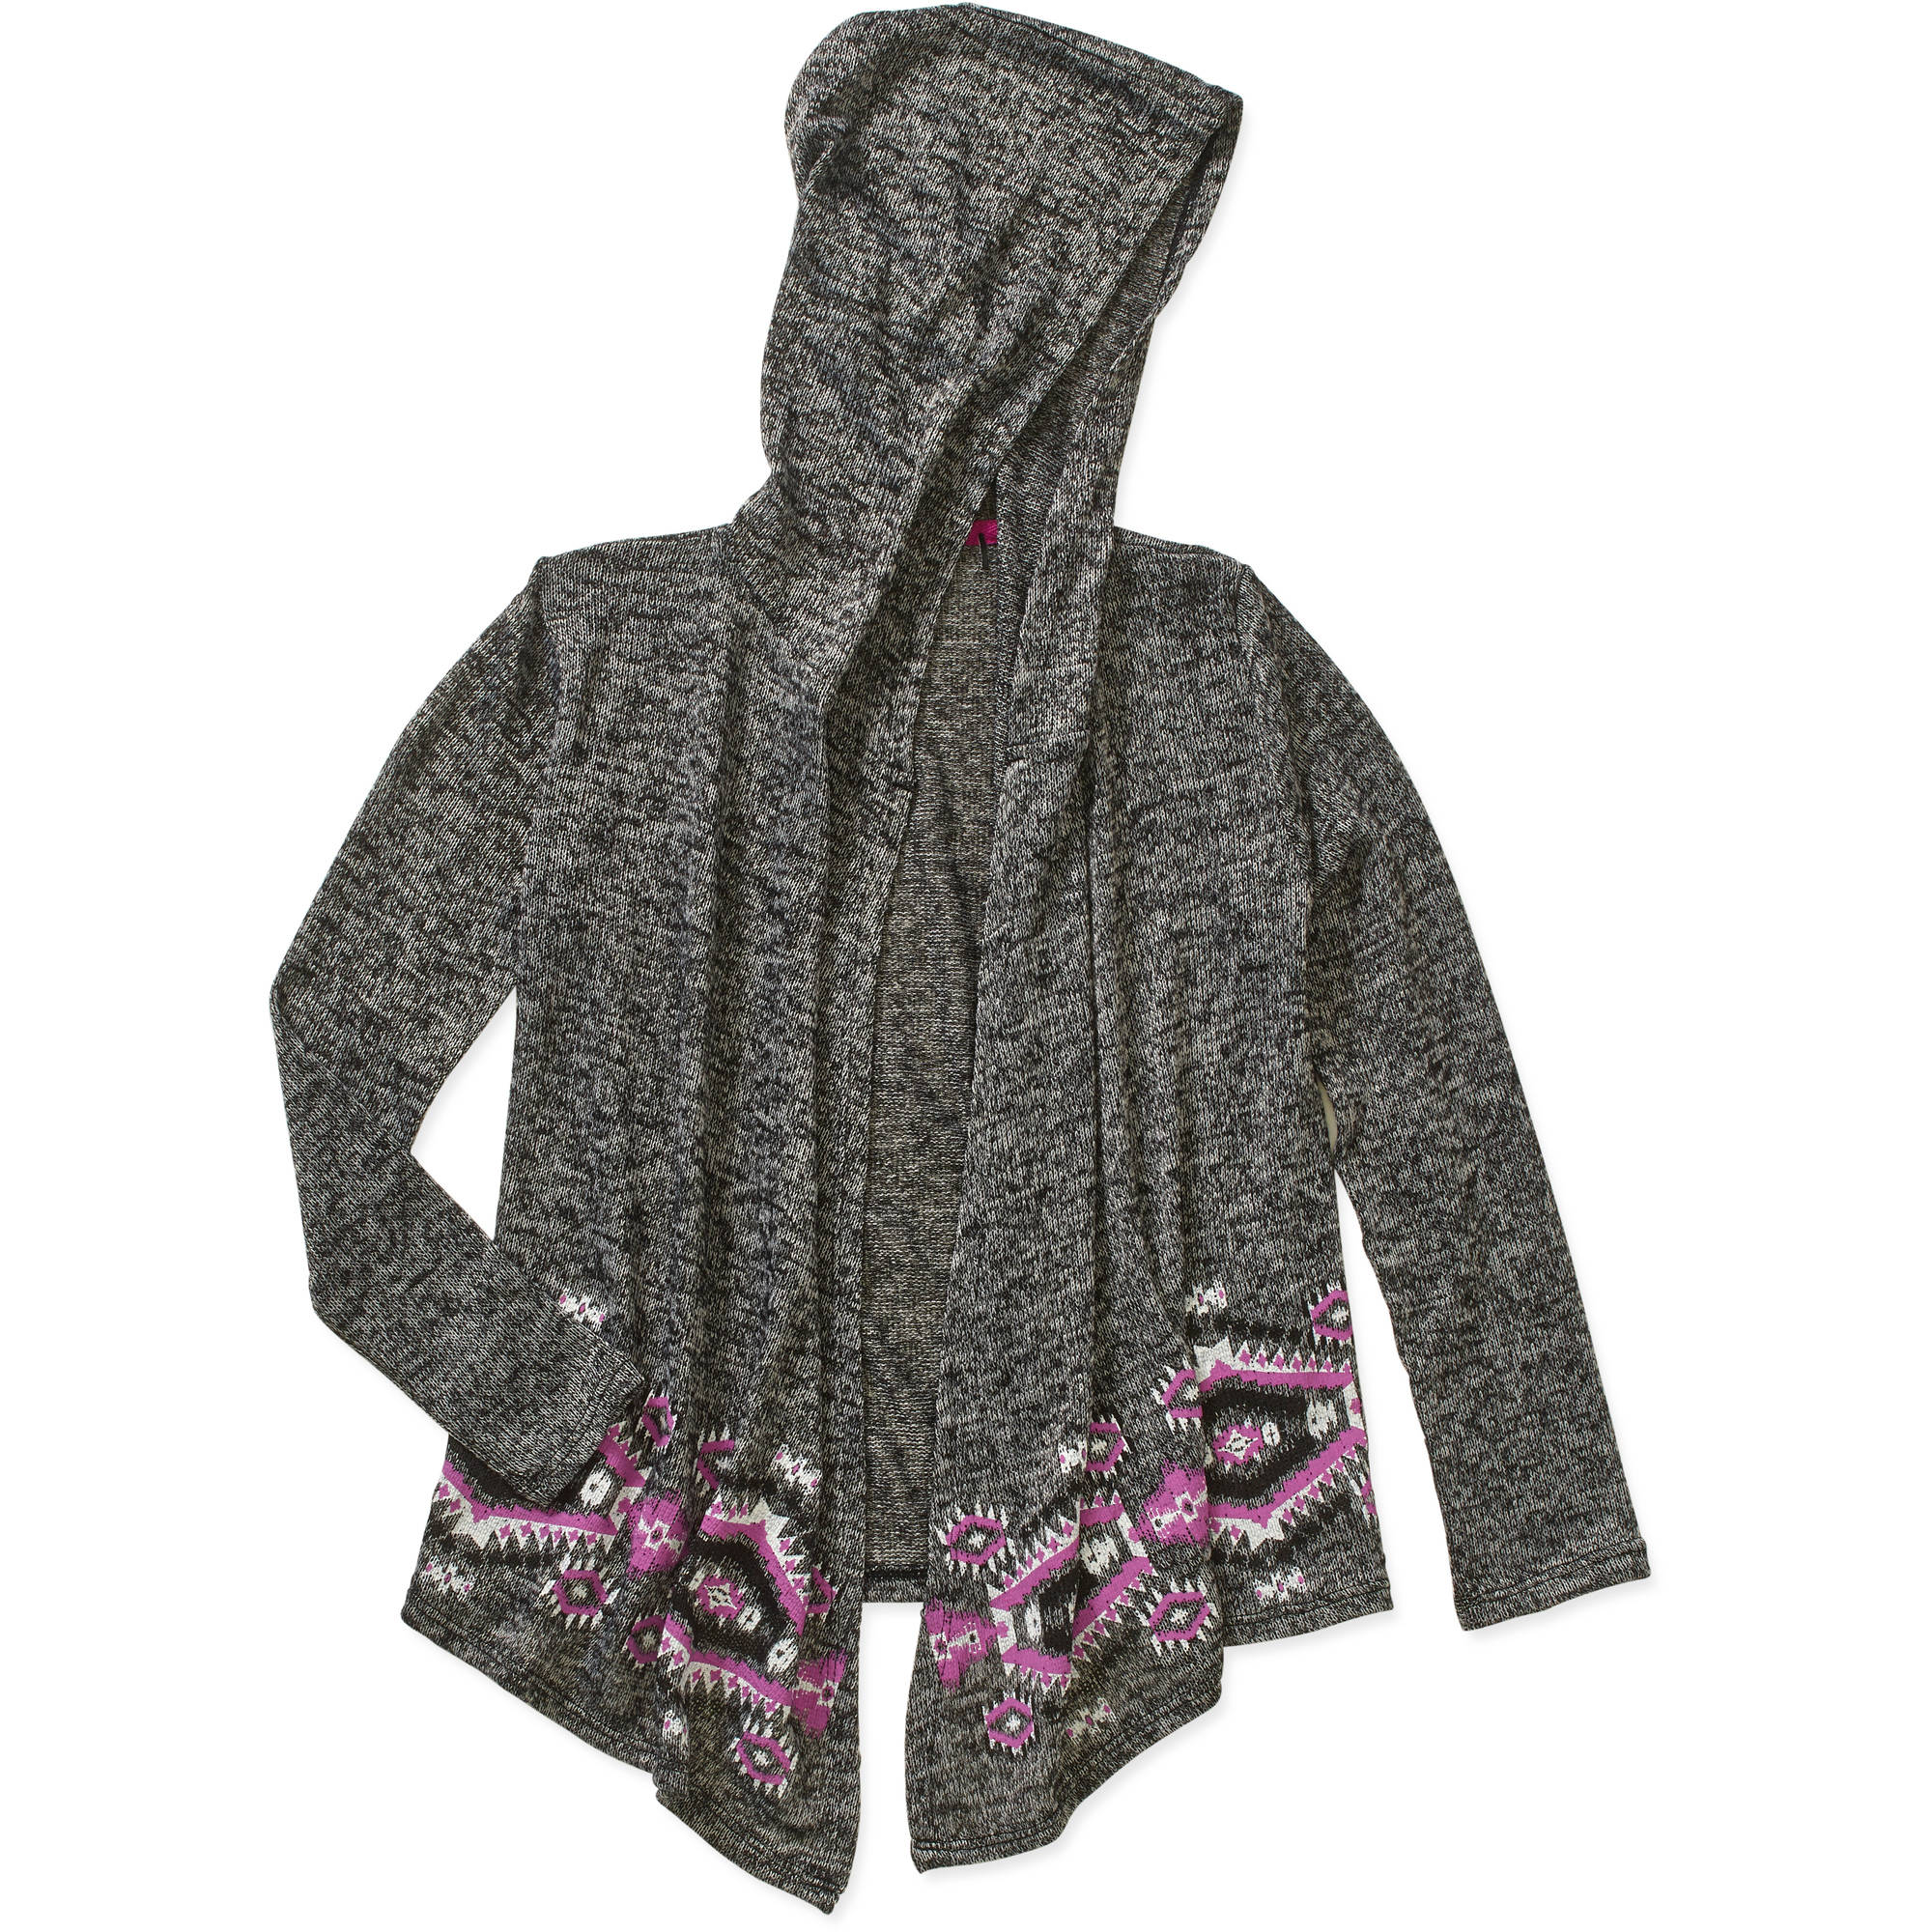 Girls' Hooded Cardigan with Border Print